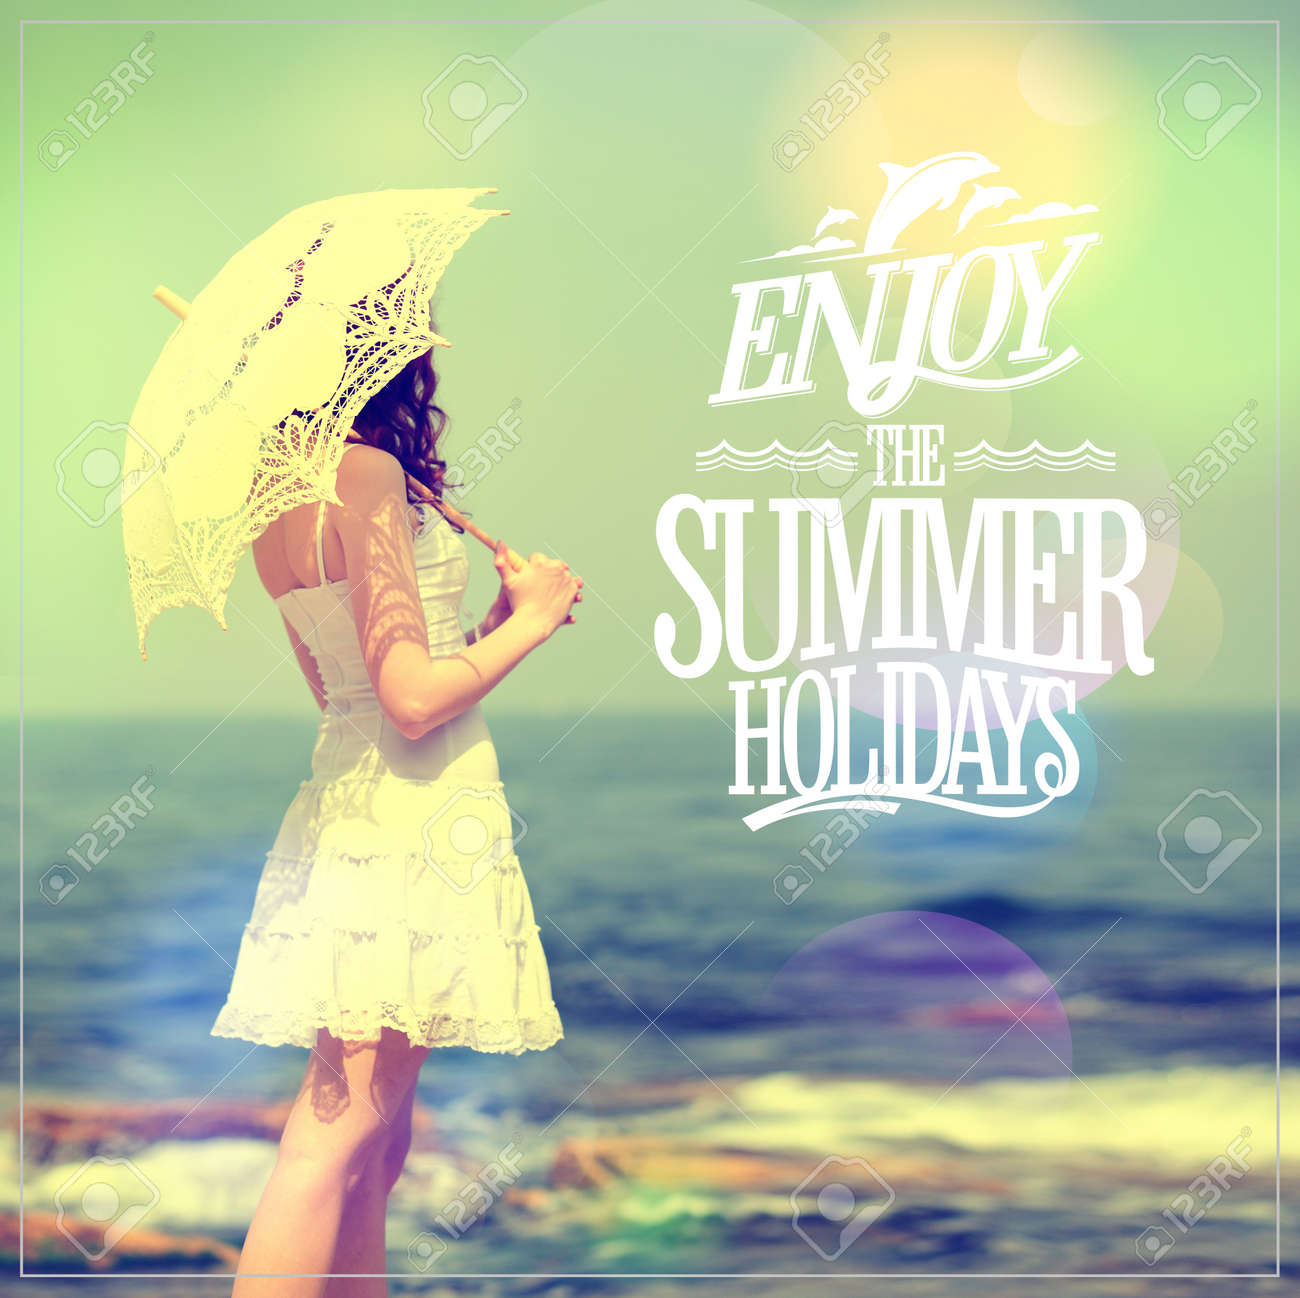 Enjoy The Summer Holidays Quote Card With Girl In White Dress Lacy Umbrella On A